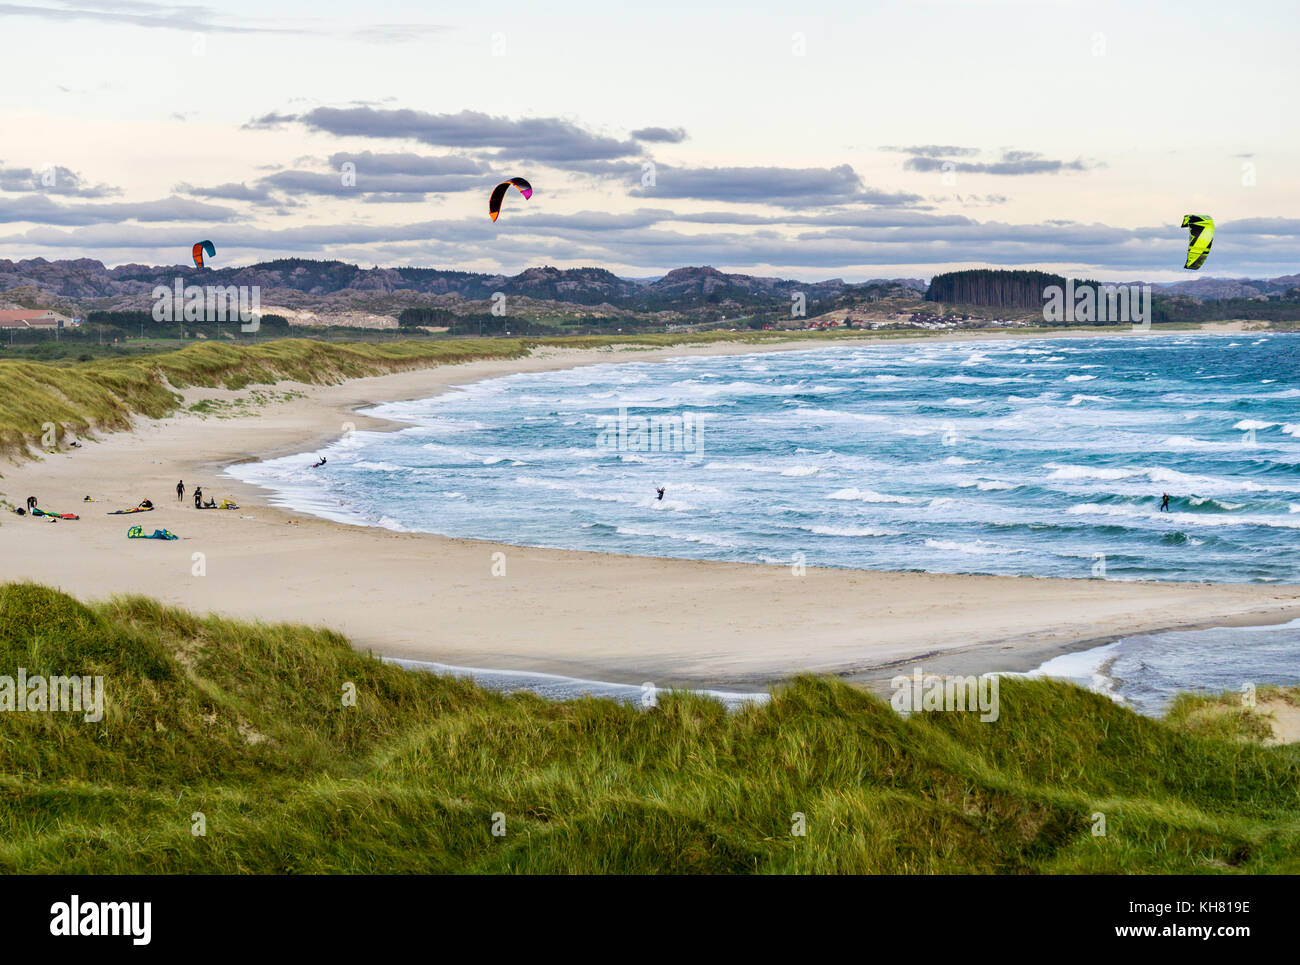 Kitesurfing men in action on stormy sunset evening at Brusand Beach, Norway. - Stock Image